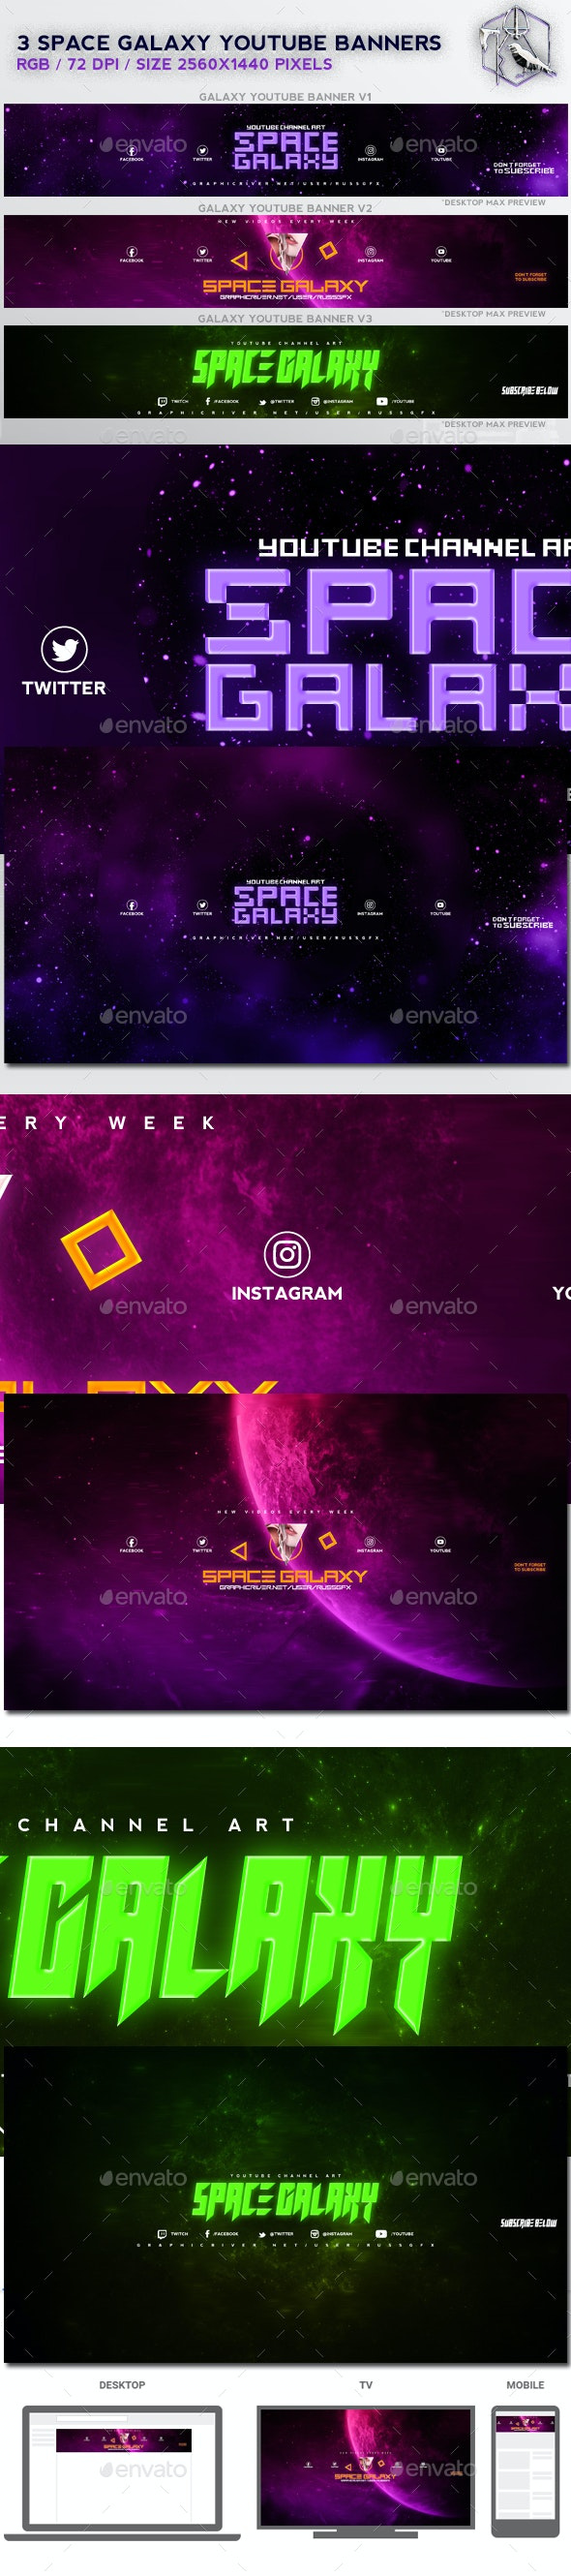 3 Galaxy Space Youtube Banners - YouTube Social Media